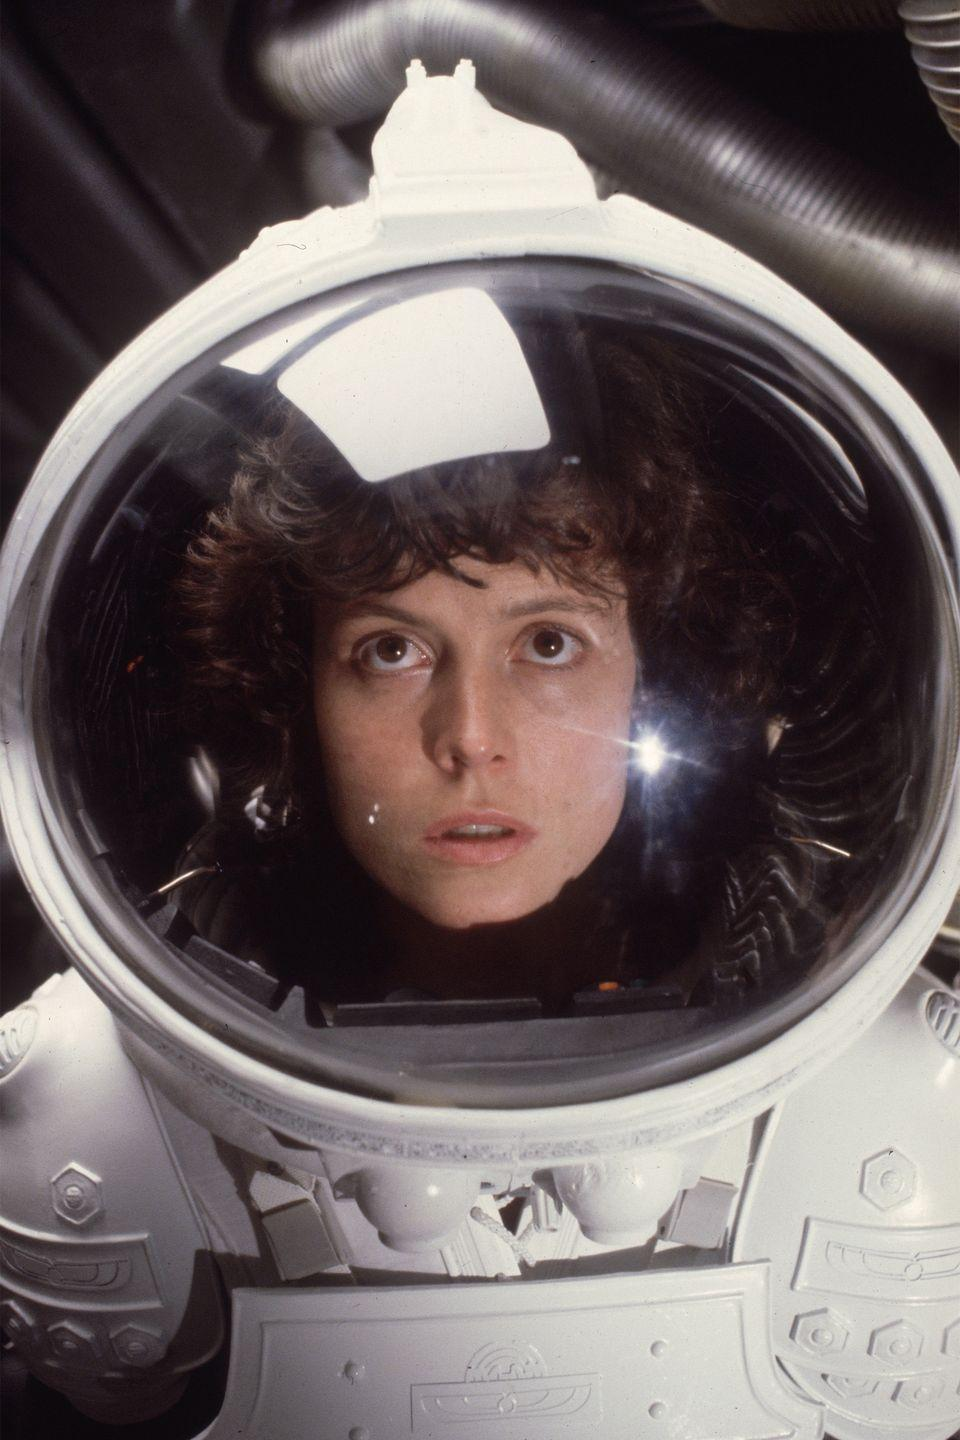 """<p>Ridley Scott masters nearly unbearable suspense in his excessively gory tale of a mysterious lifeform and the heroine named Ripley it battles on some random interstellar moon. If that doesn't scare you to the point of crying and shaking in a corner, then the thought of the entire affair going down a gazillion miles from Earth where no one can hear a scream should. <a class=""""link rapid-noclick-resp"""" href=""""https://www.amazon.com/gp/video/detail/B00498VS1E/ref=atv_dl_rdr?tag=syn-yahoo-20&ascsubtag=%5Bartid%7C10056.g.10247453%5Bsrc%7Cyahoo-us"""" rel=""""nofollow noopener"""" target=""""_blank"""" data-ylk=""""slk:Watch Now"""">Watch Now</a></p>"""